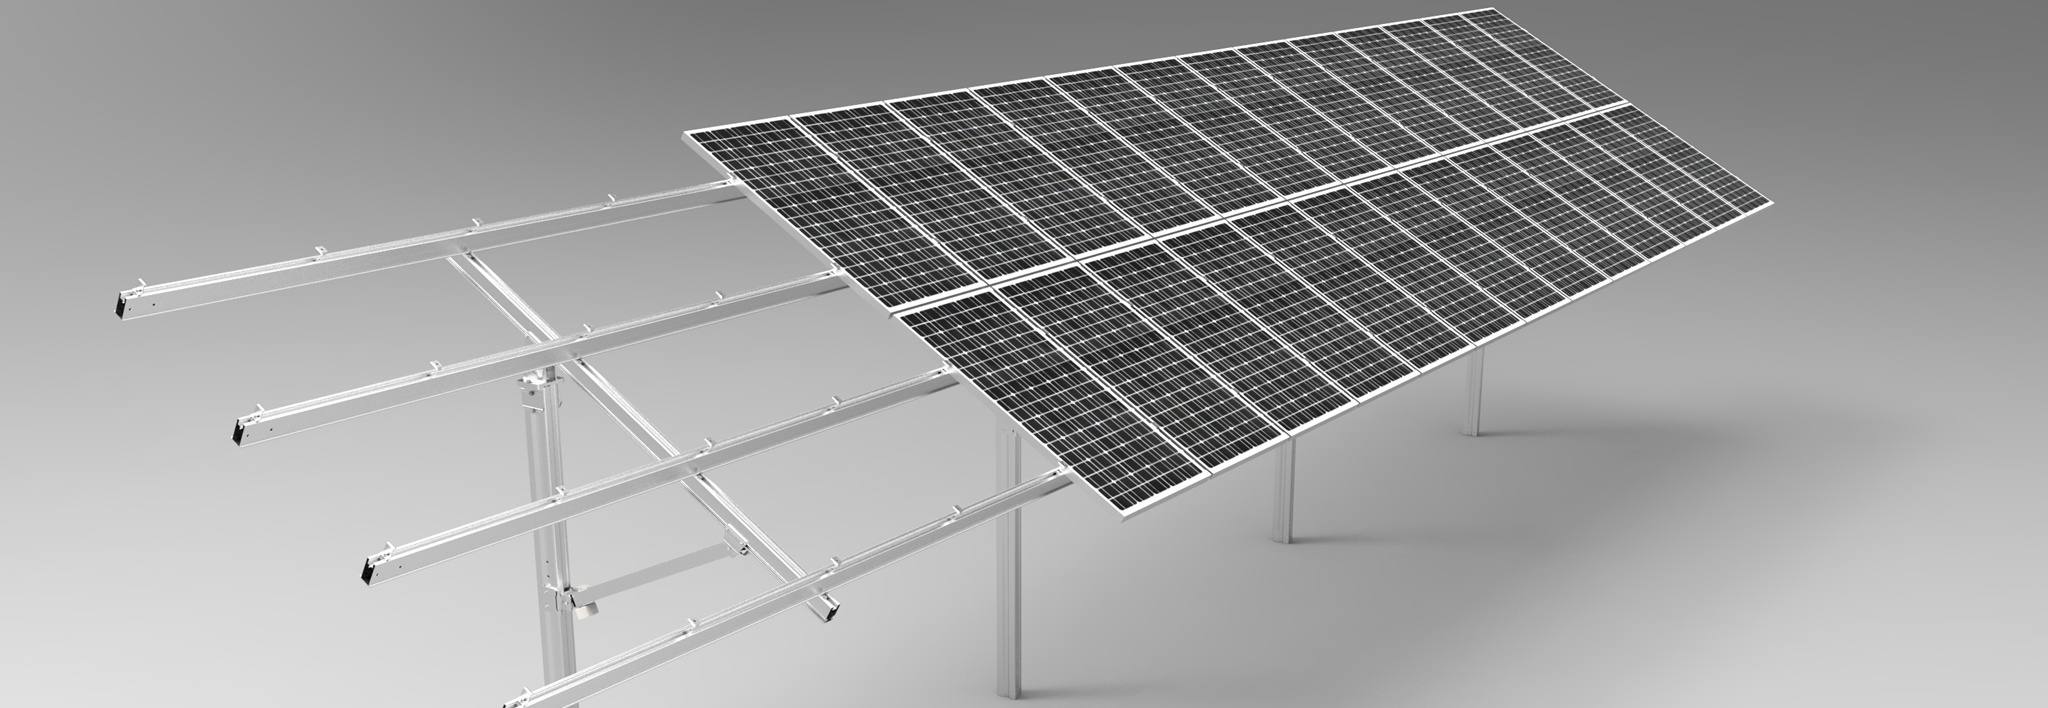 PV-ezRack SolarTerrace II-A with Panels 01